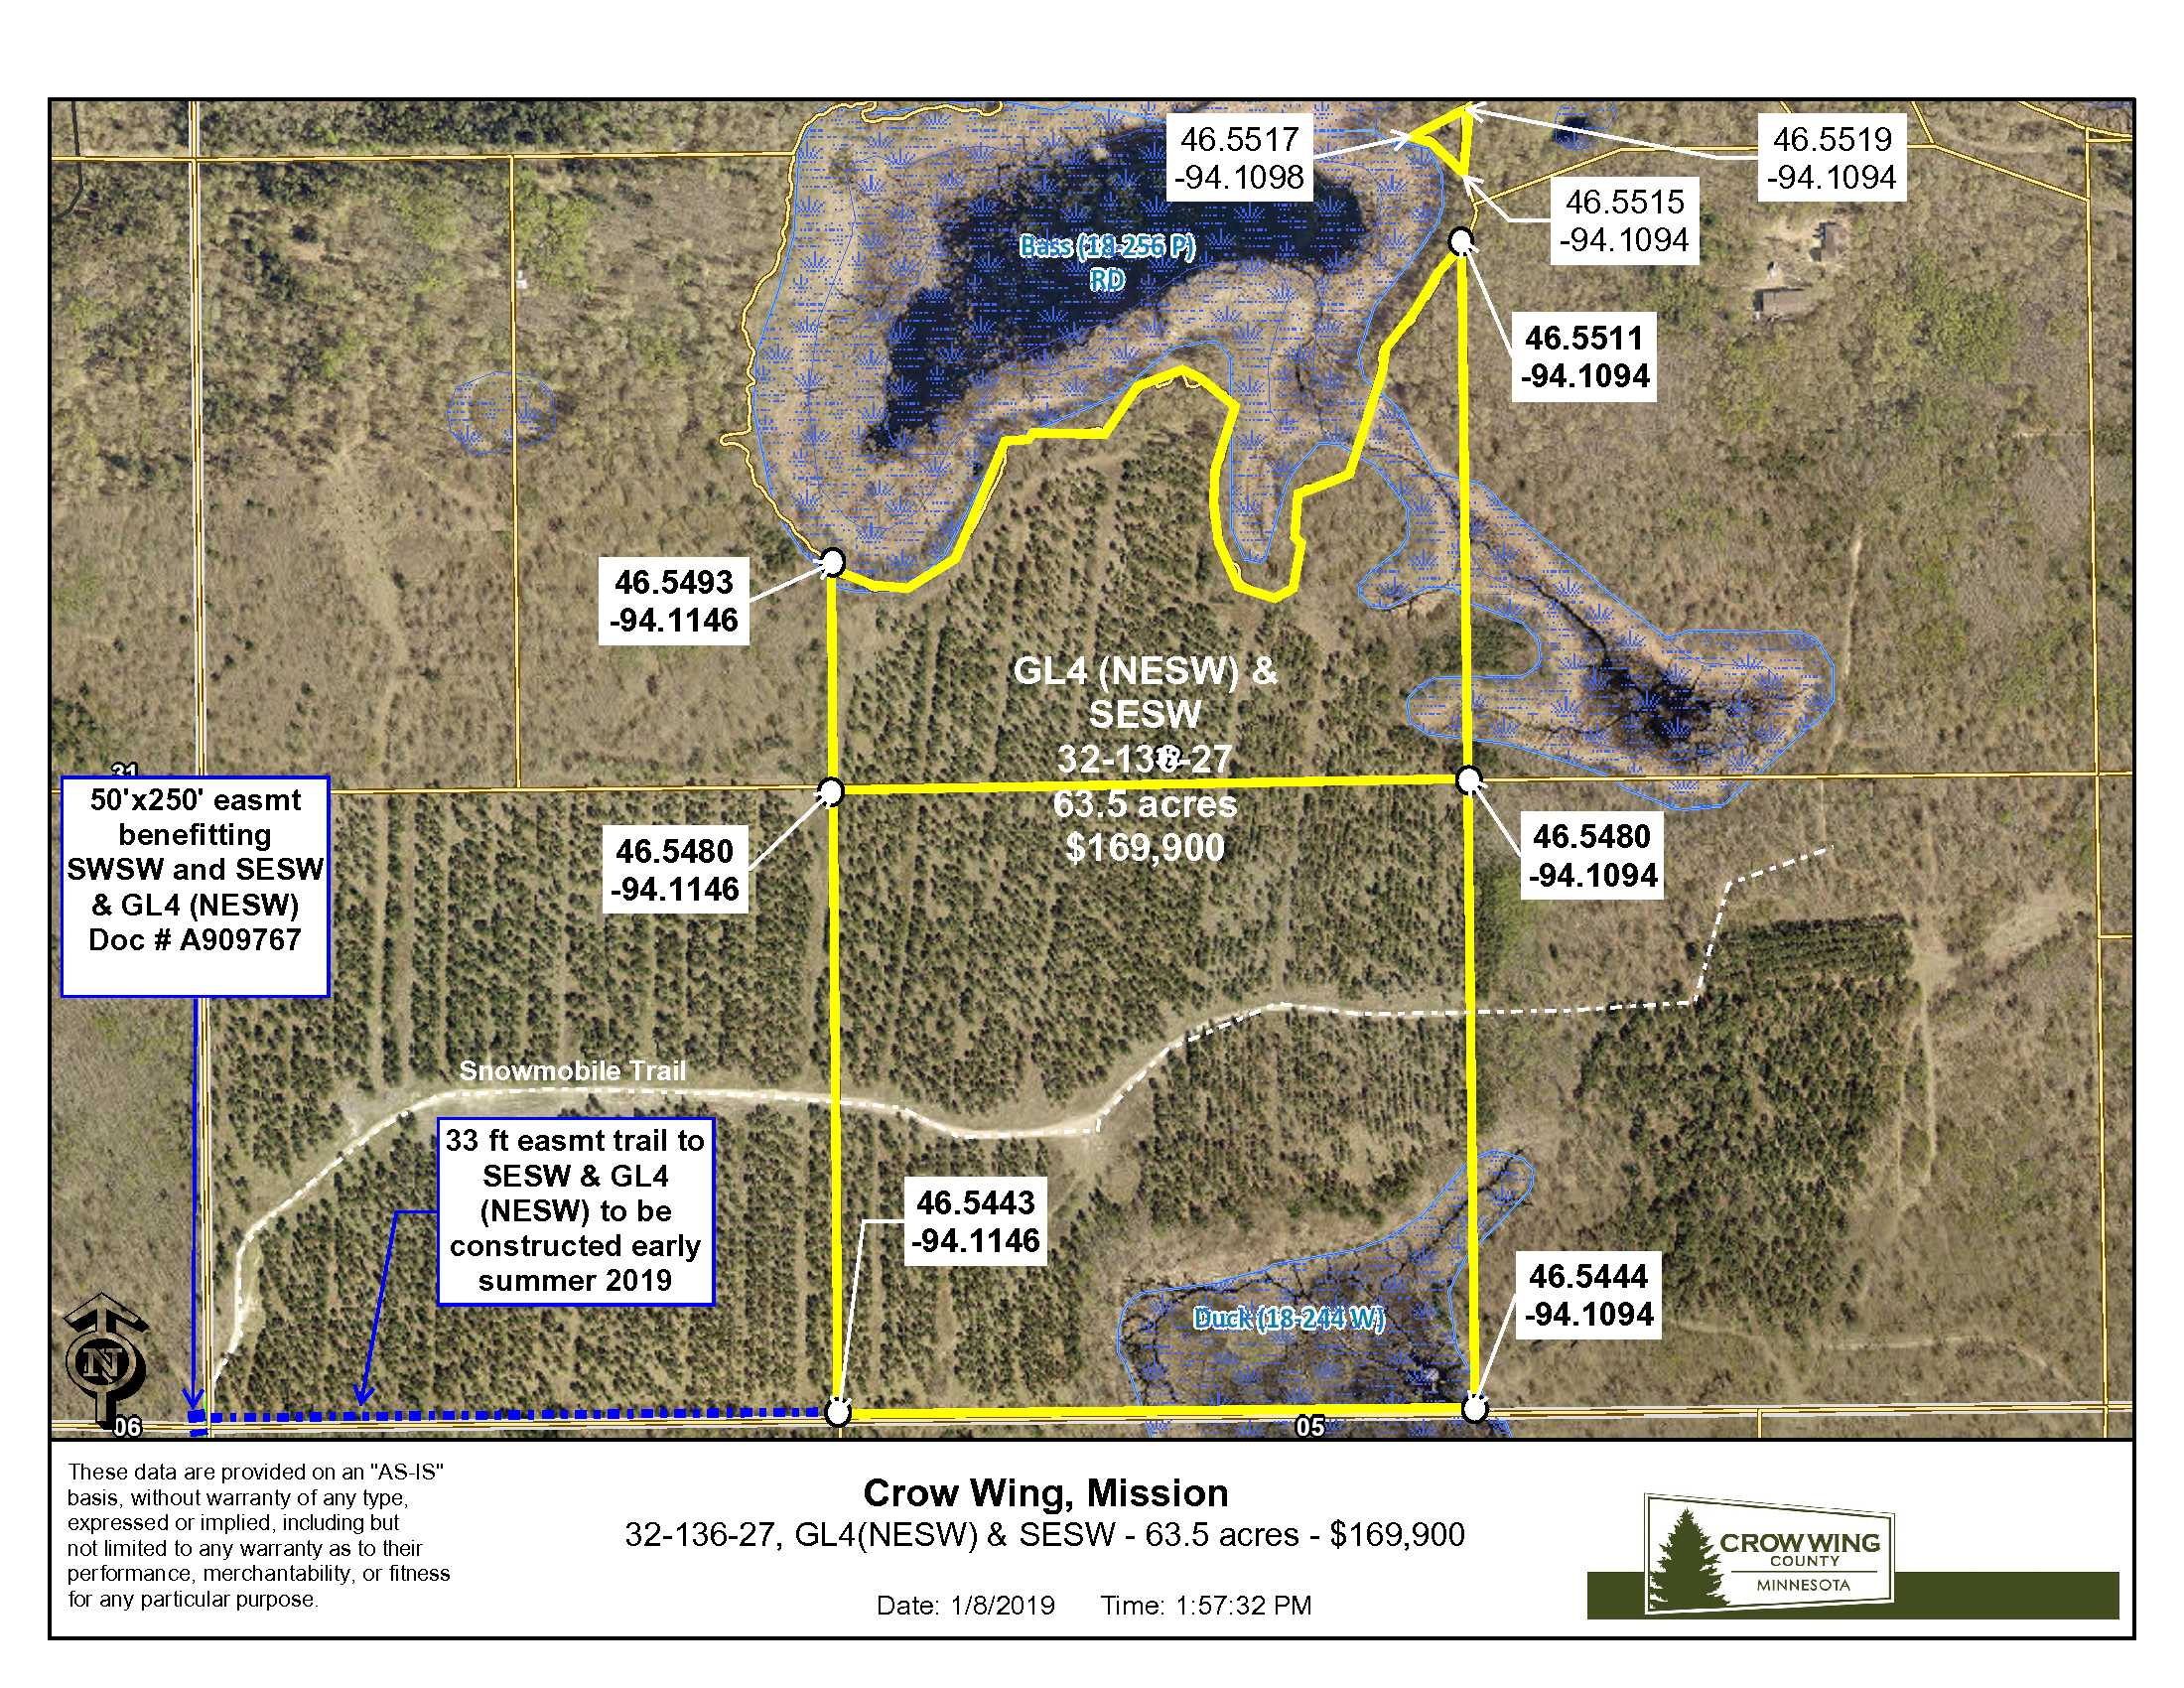 Access from Old Mill Rd., Mission Twp, Crow Wing County